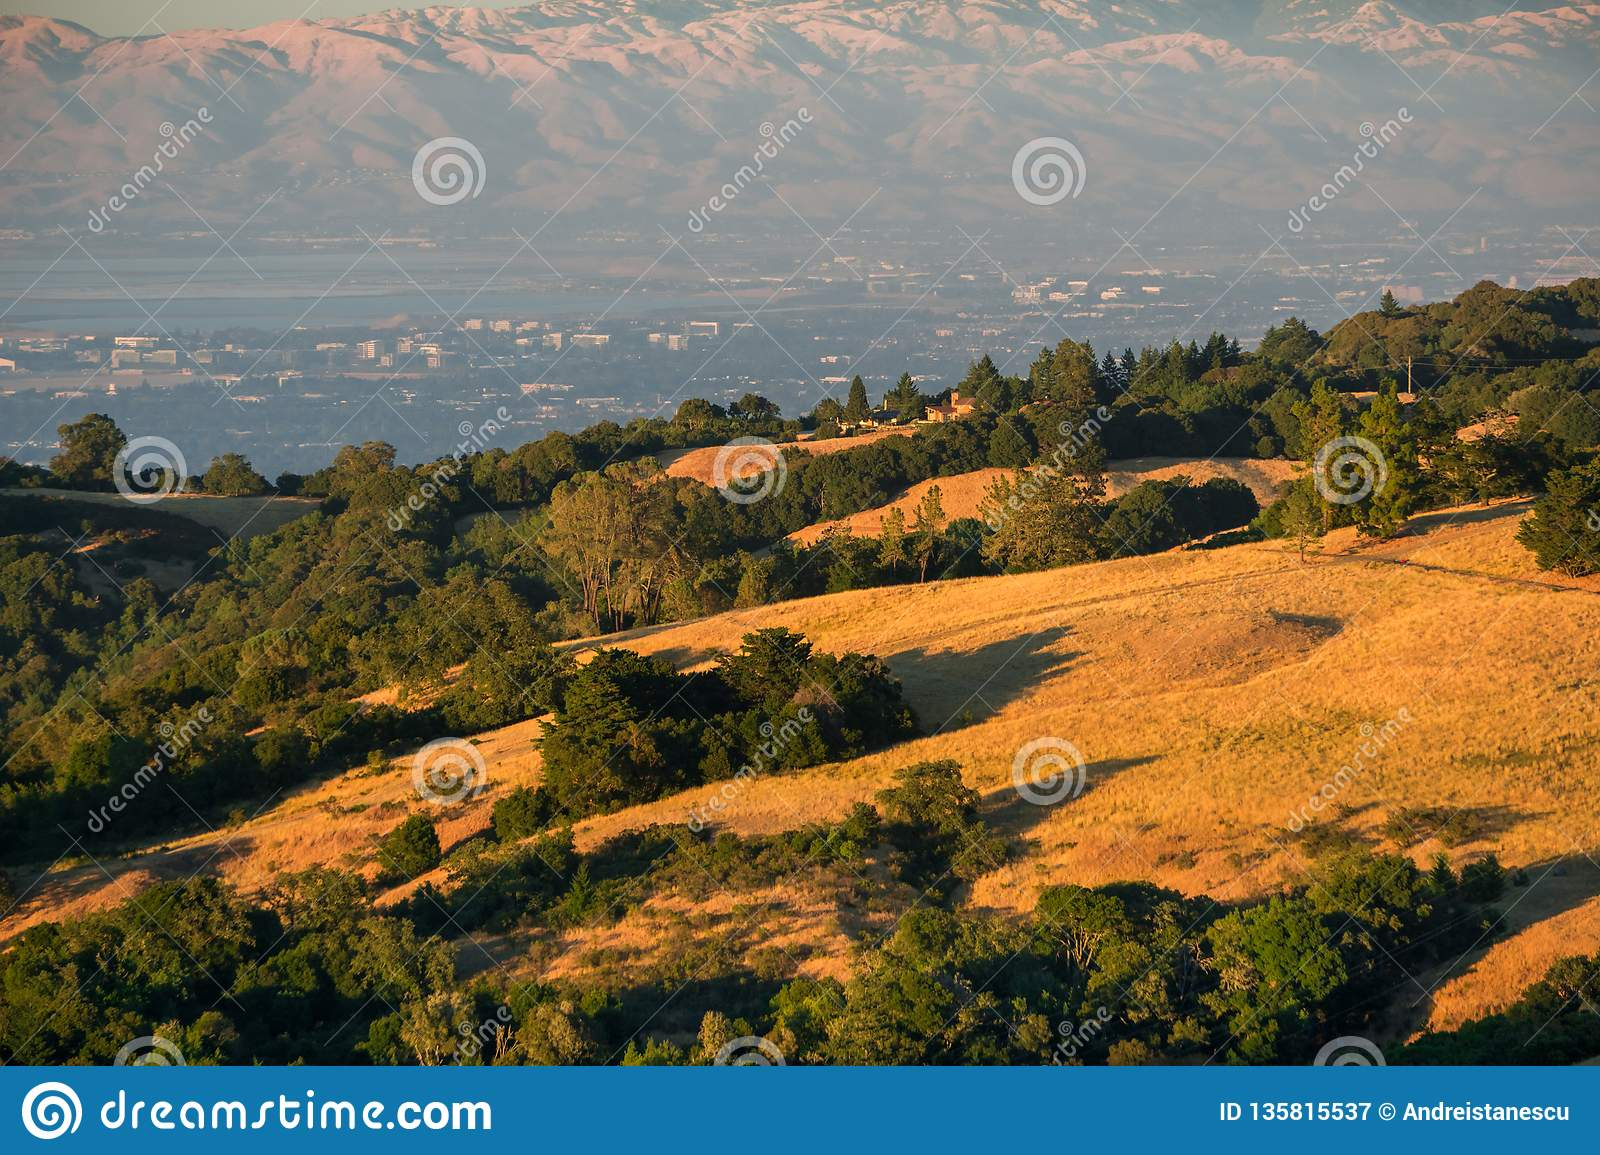 Golden hills in the sunset light; Sunnyvale, San Francisco bay area in the background, California